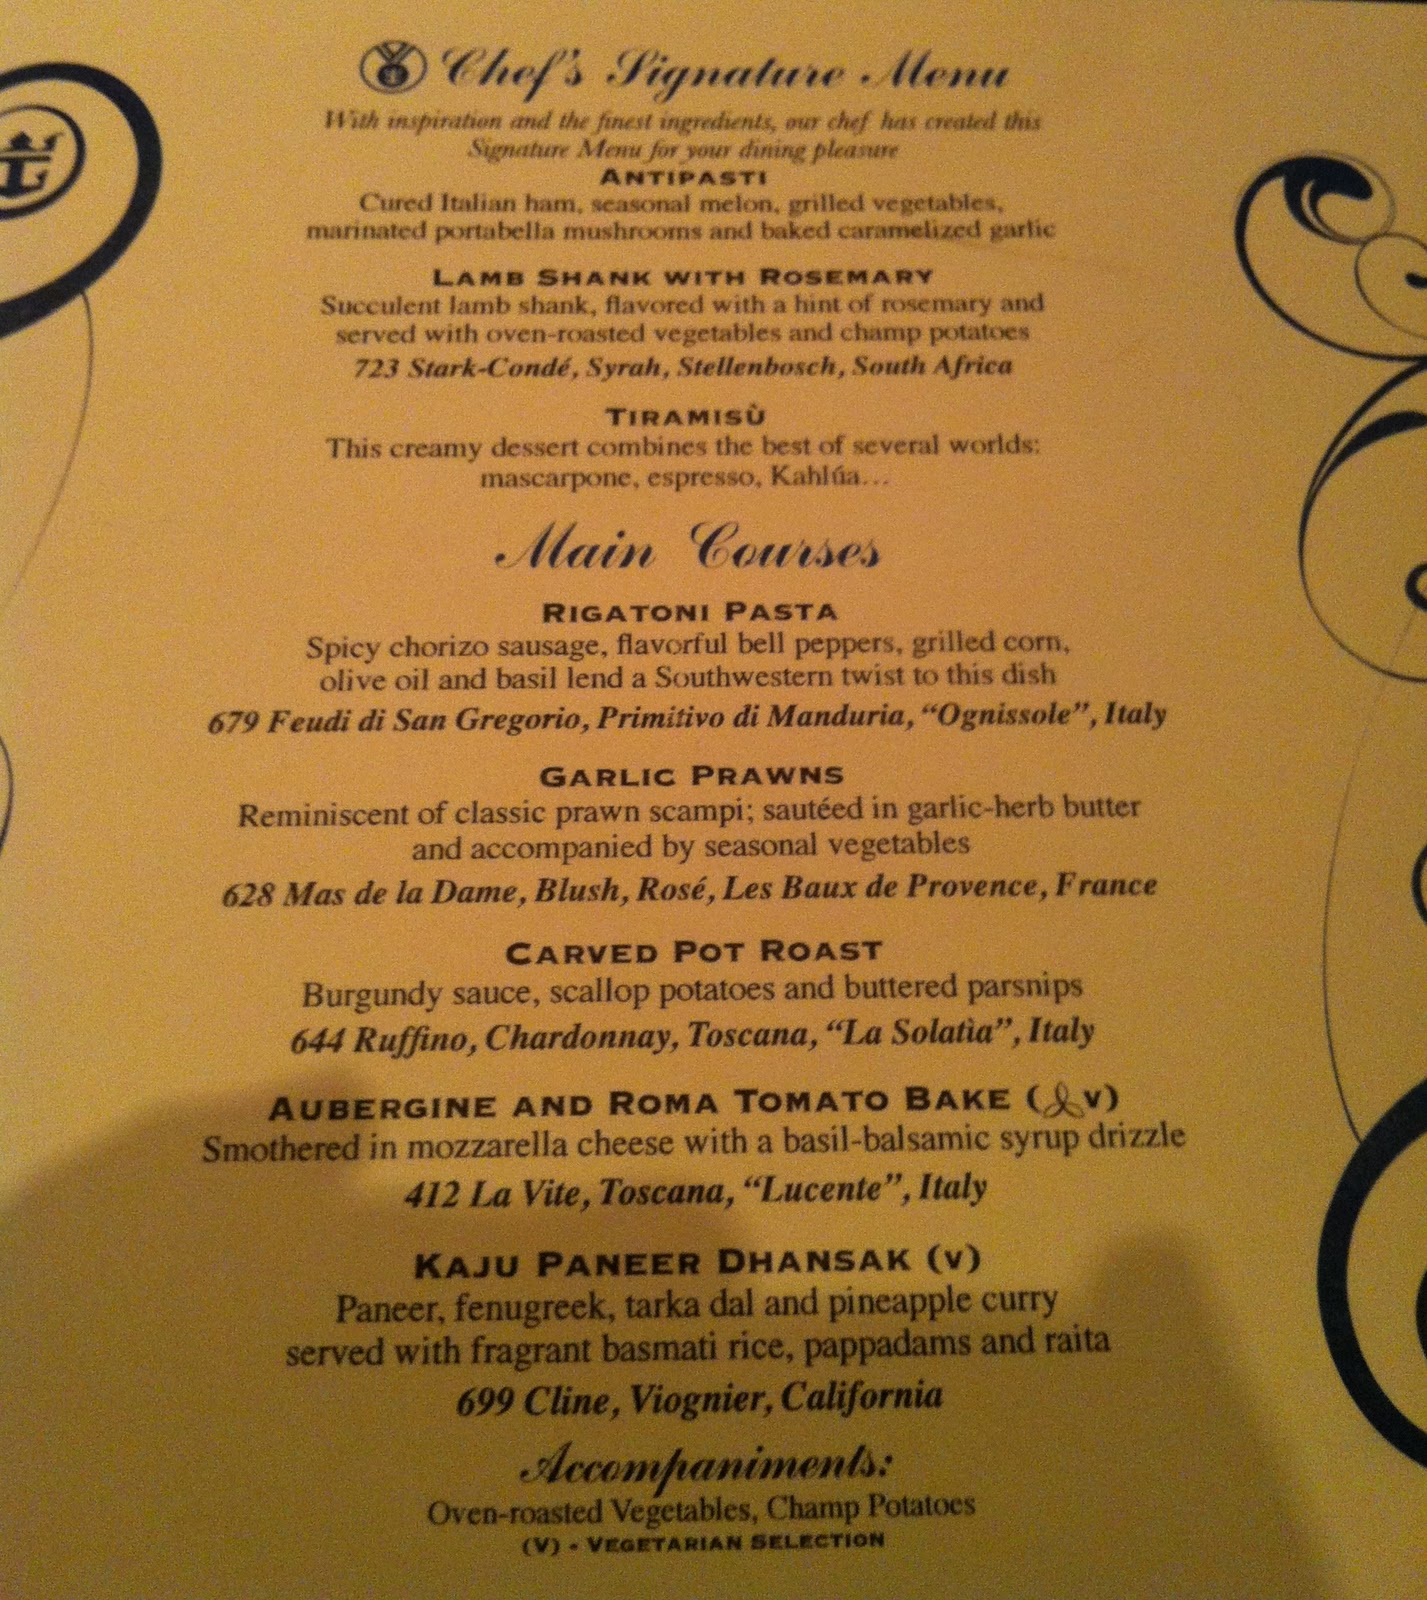 Prego Cucina Italiana Menu Taste Of Hawaii Royal Caribbean Independence Of The Seas Dinner